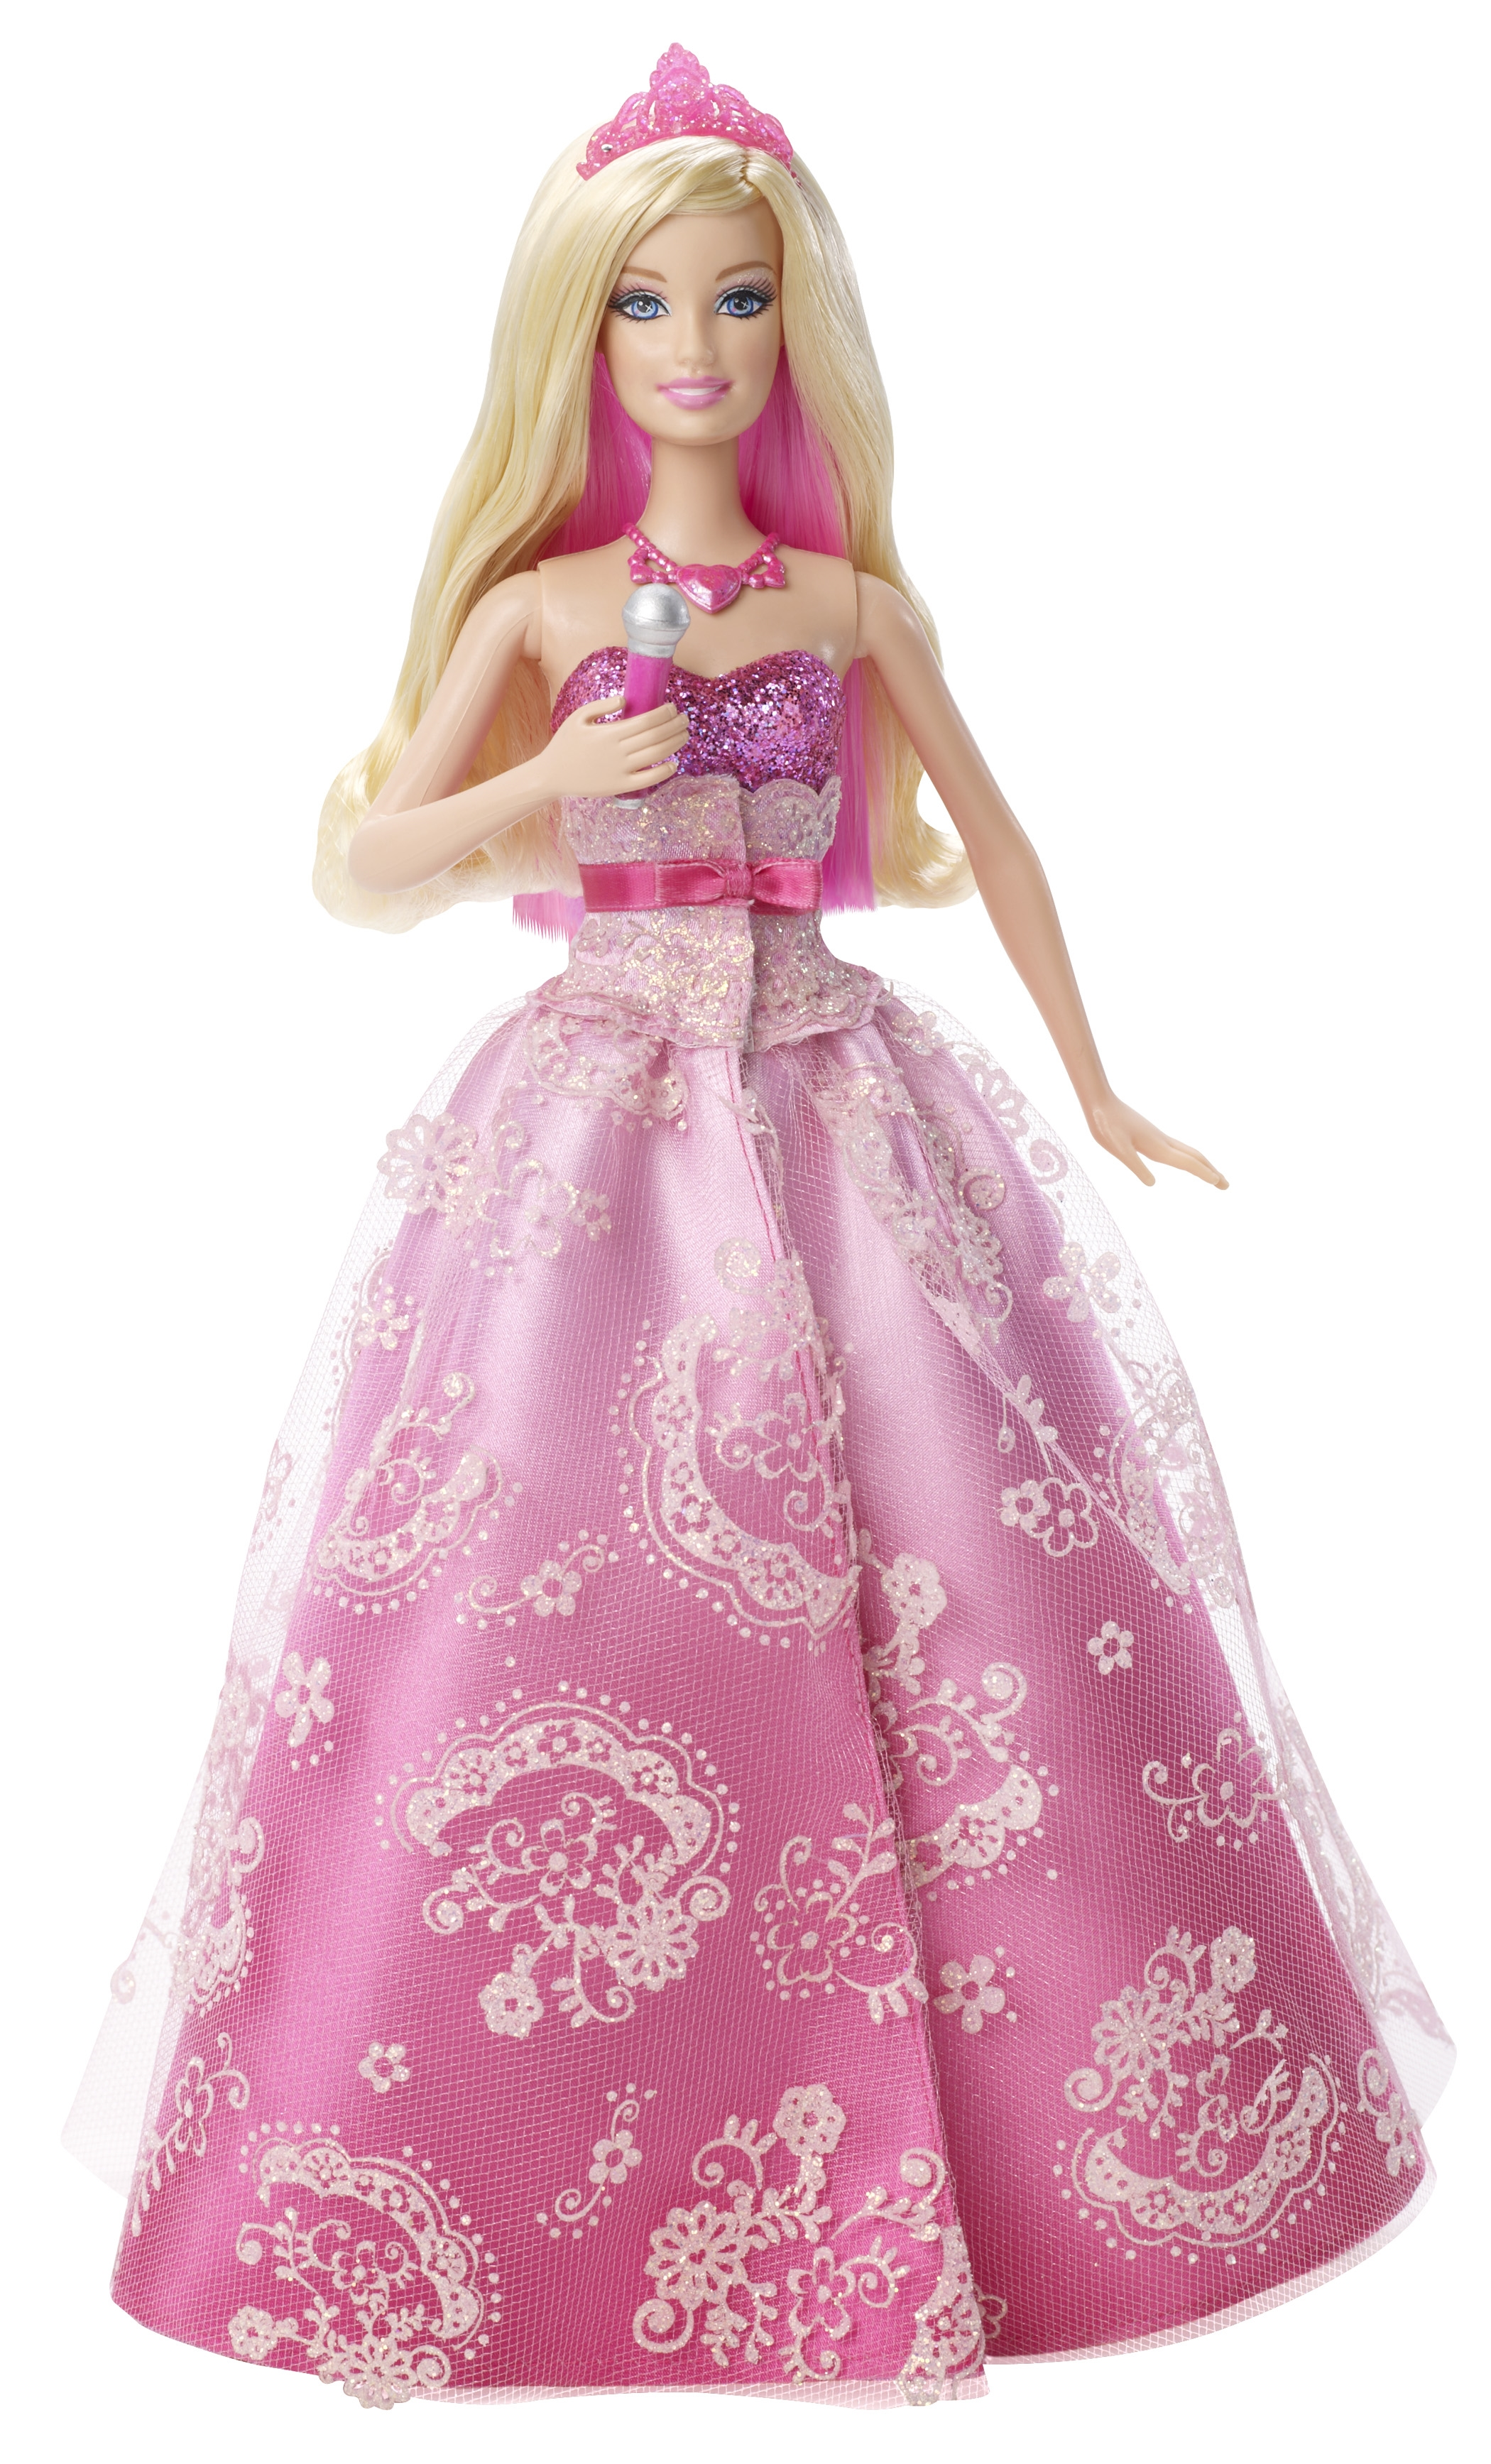 barbie princess and the popstar tori doll image